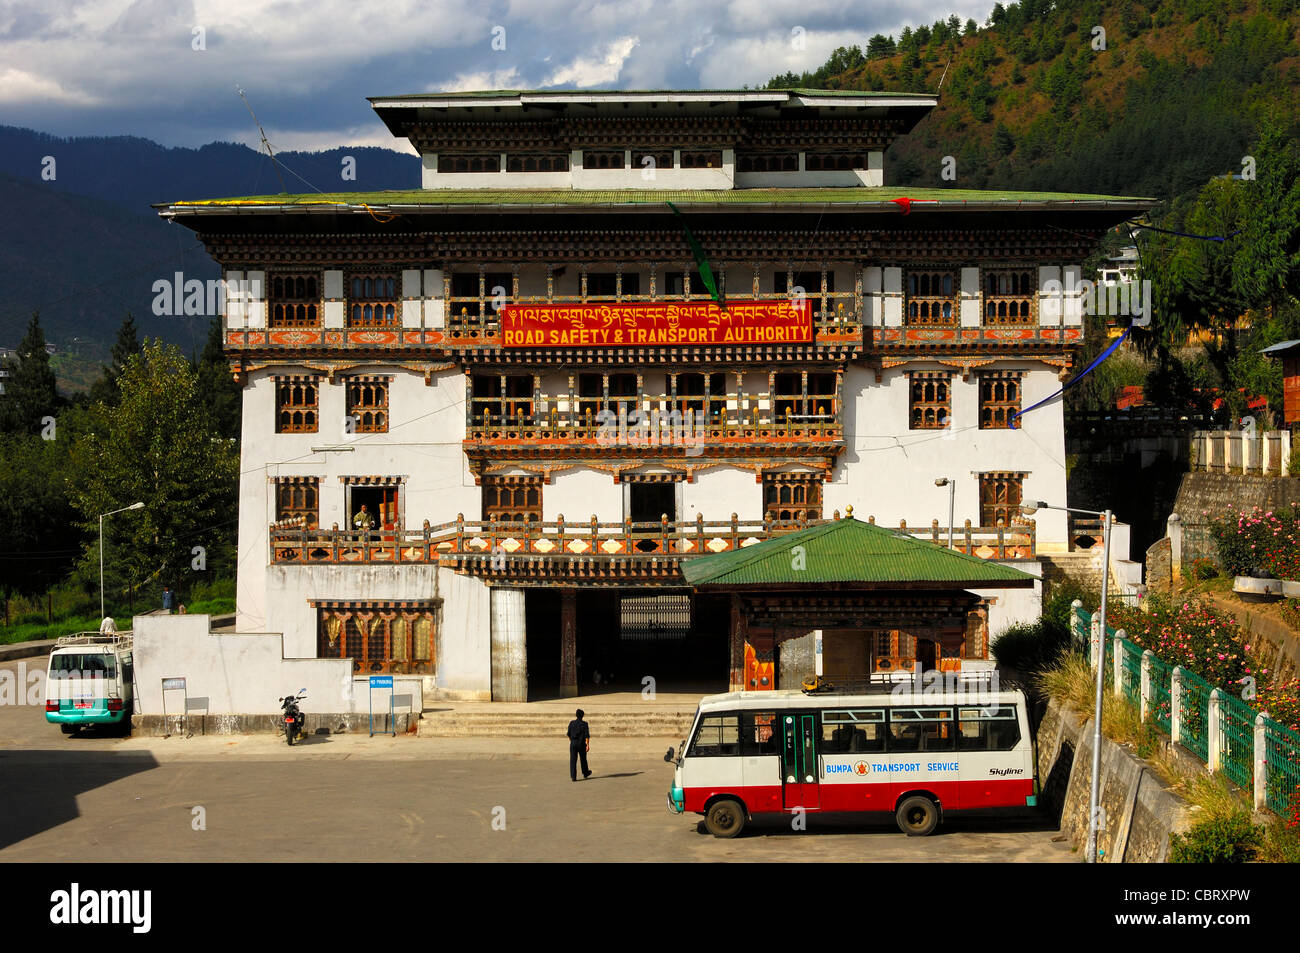 Headquarters of the Road Safety and Transport Authority, Thimphu, Bhutan - Stock Image